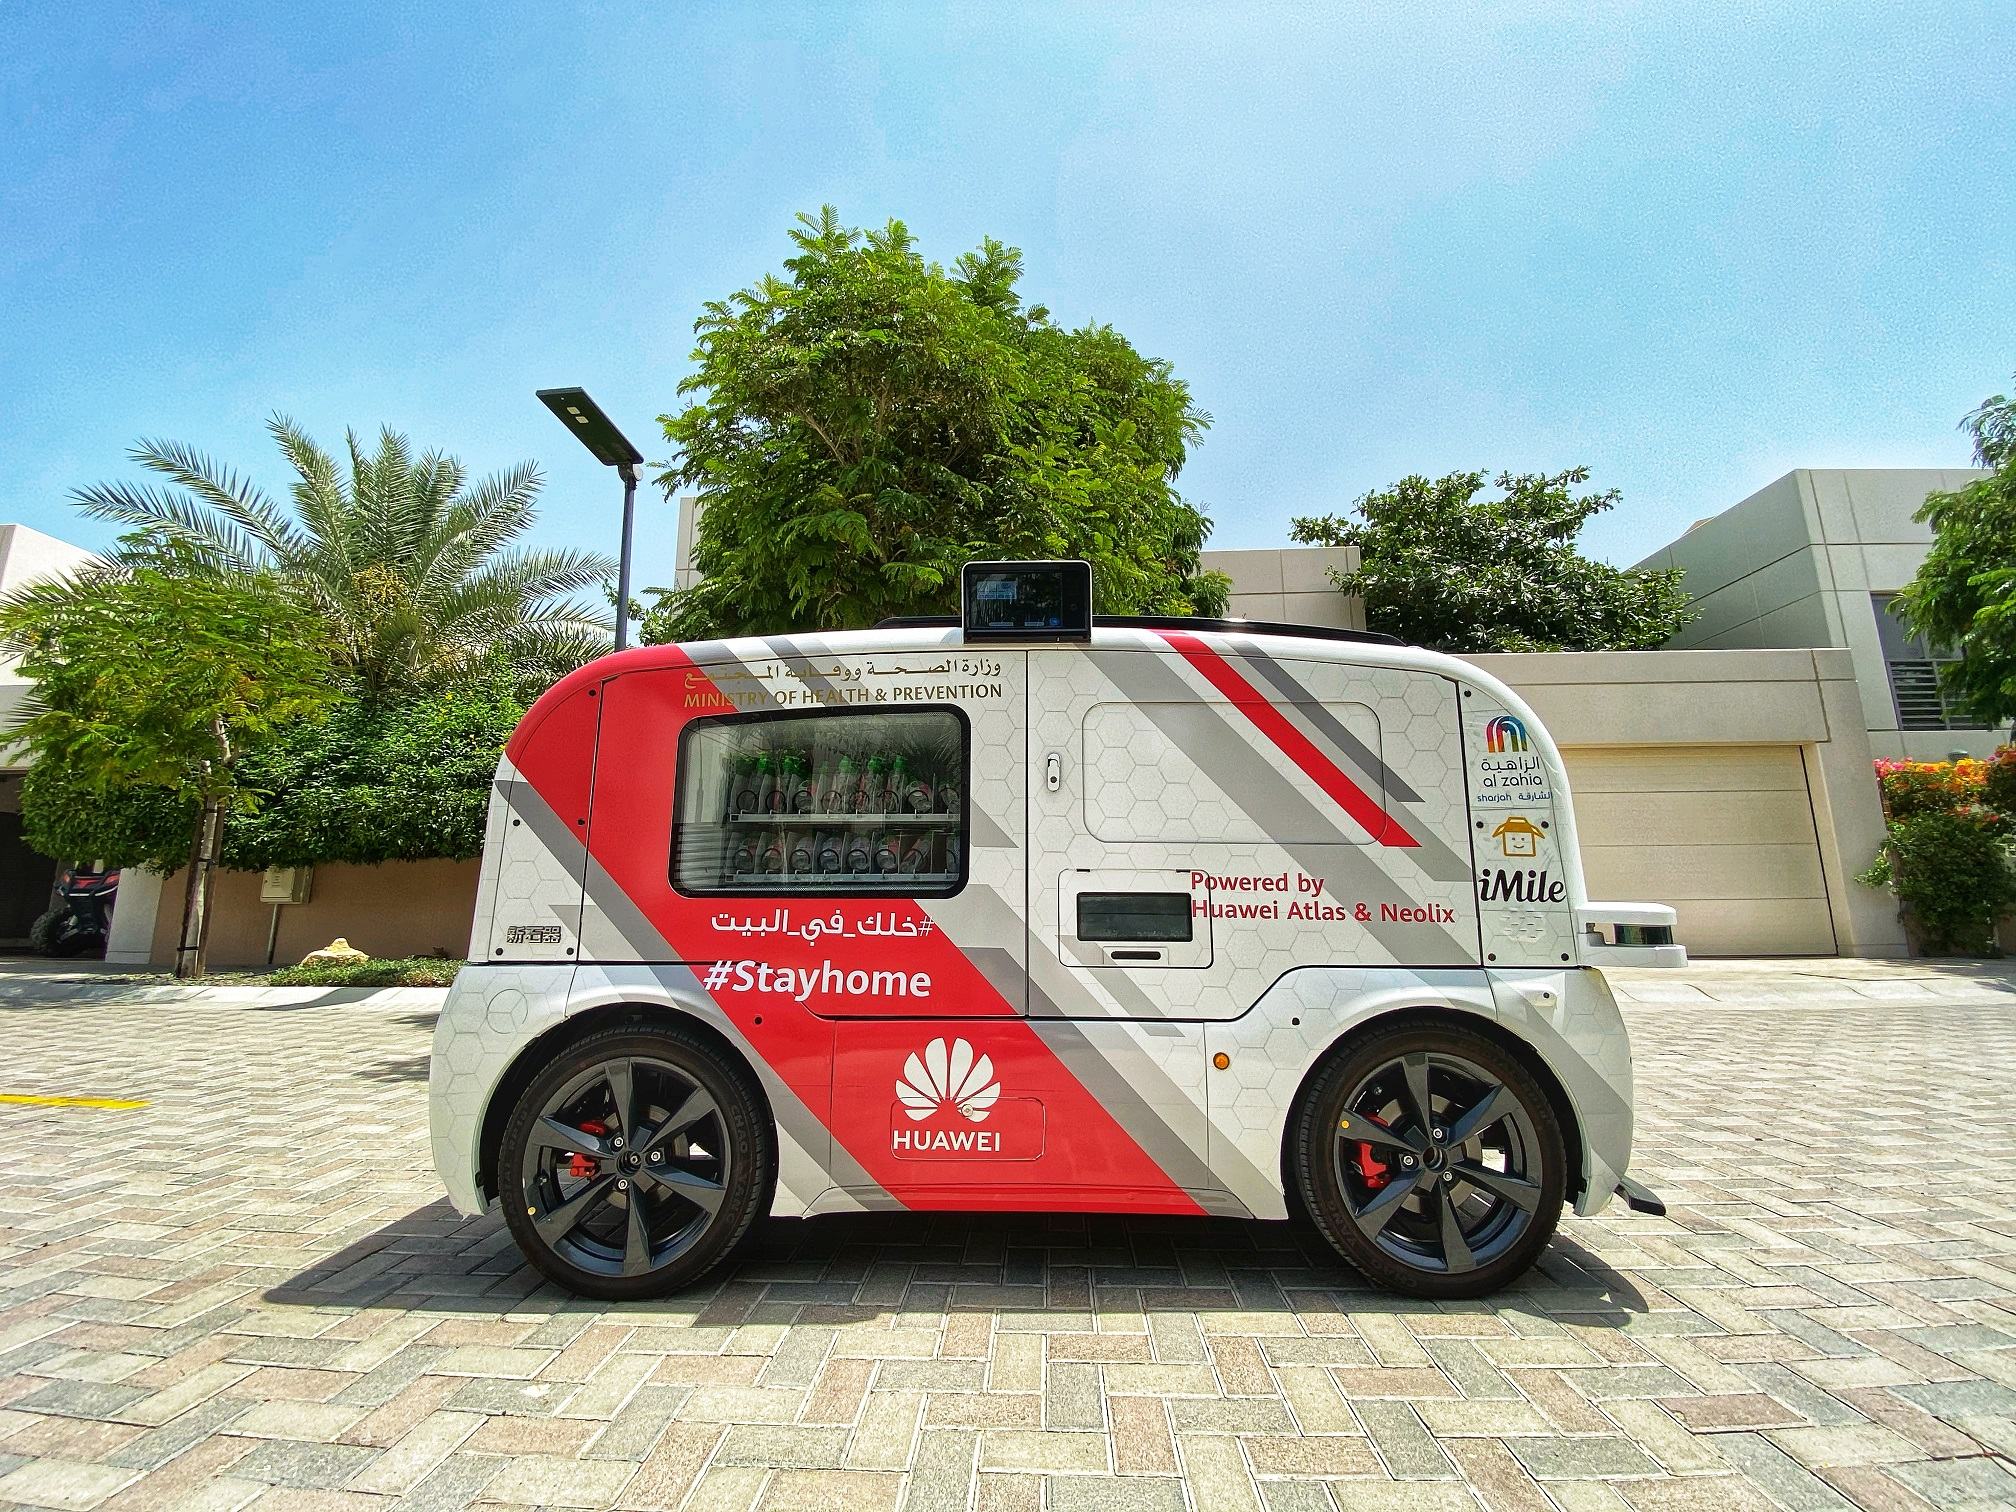 Al Zahia deployed the first driverless car in the UAE to support the health and wellbeing of residents